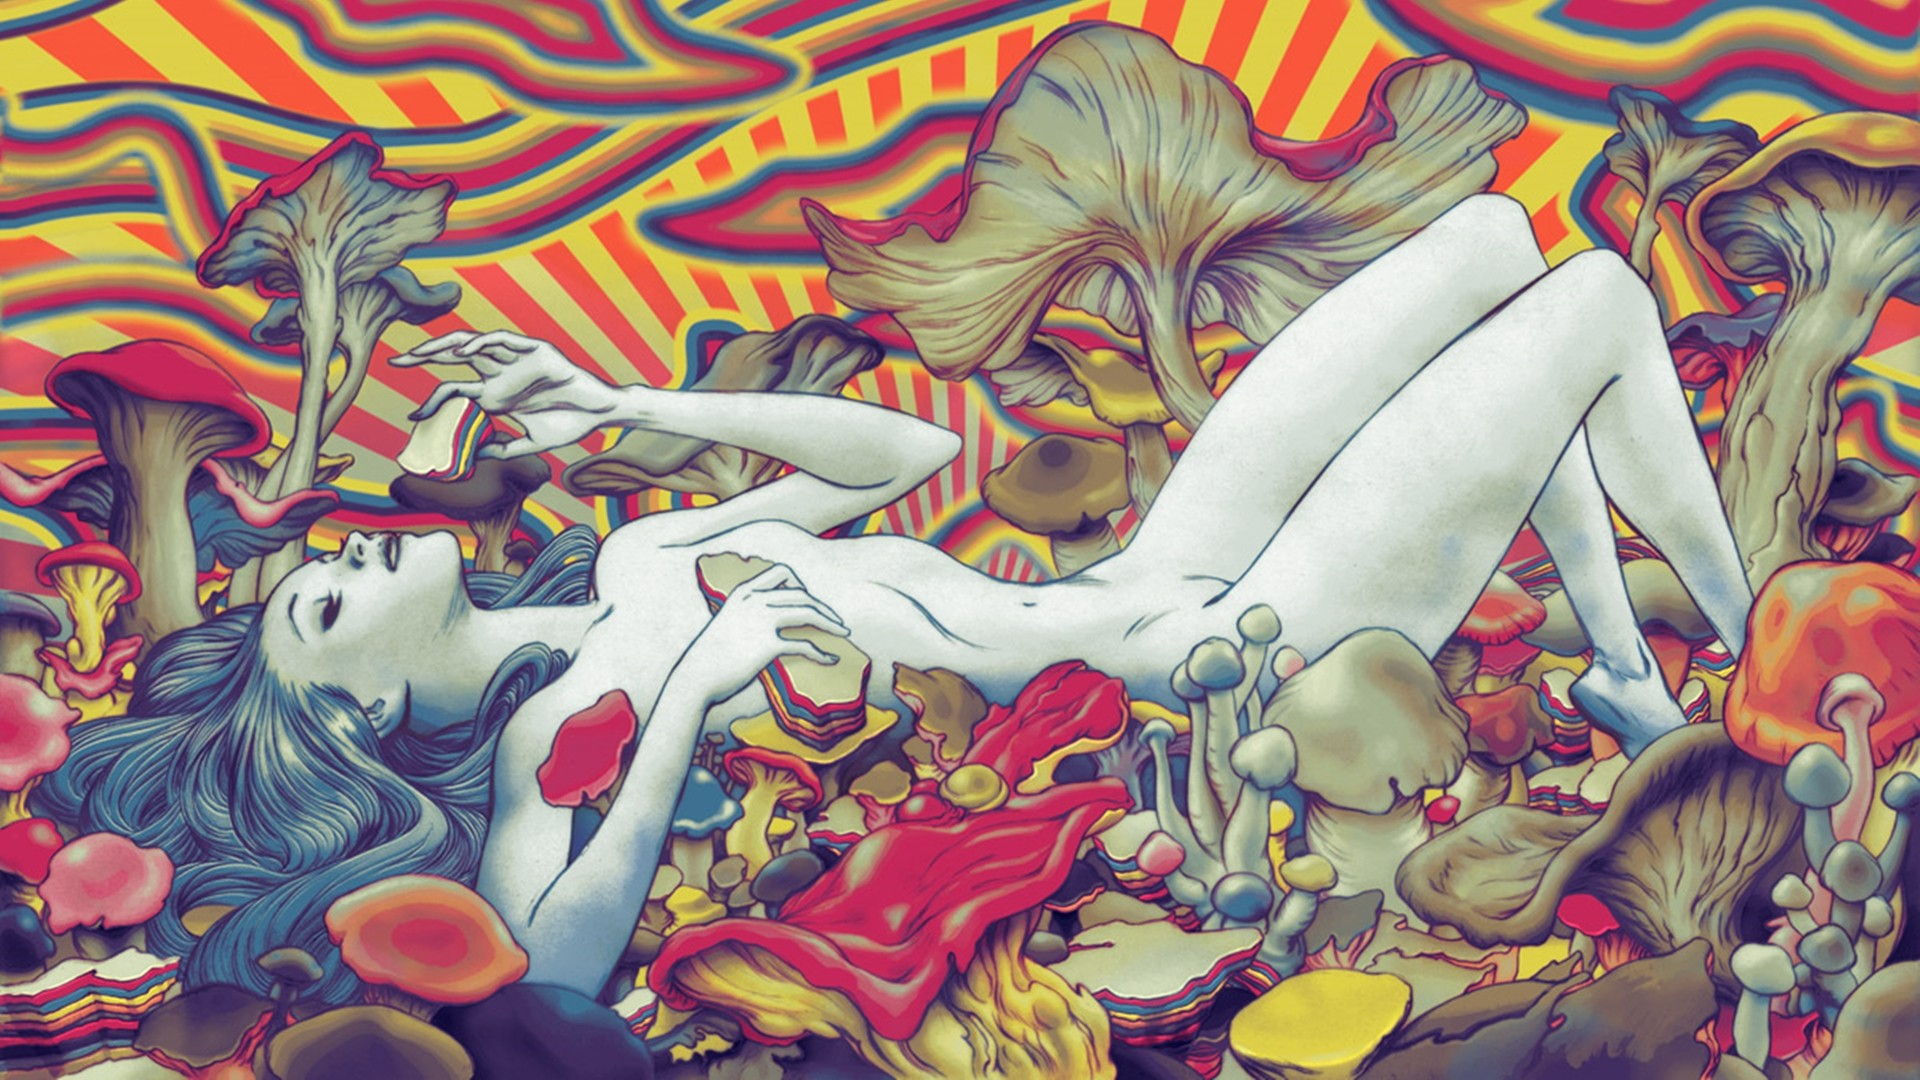 Female Psychedelic Wallpaper 1920x1080